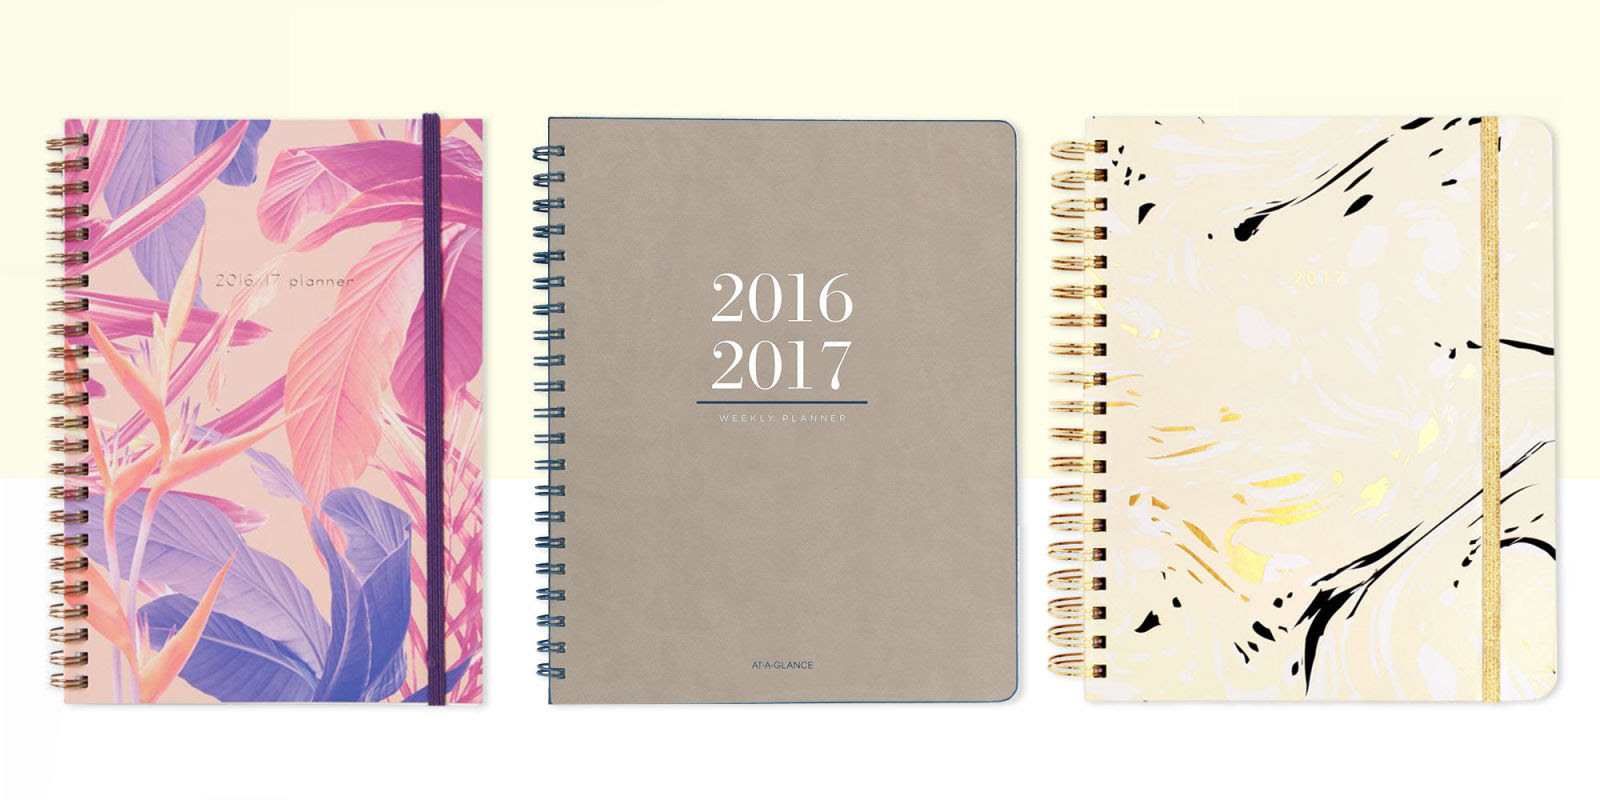 13 Best Daily Planners and Organizers for 2017 - Weekly and Daily ...